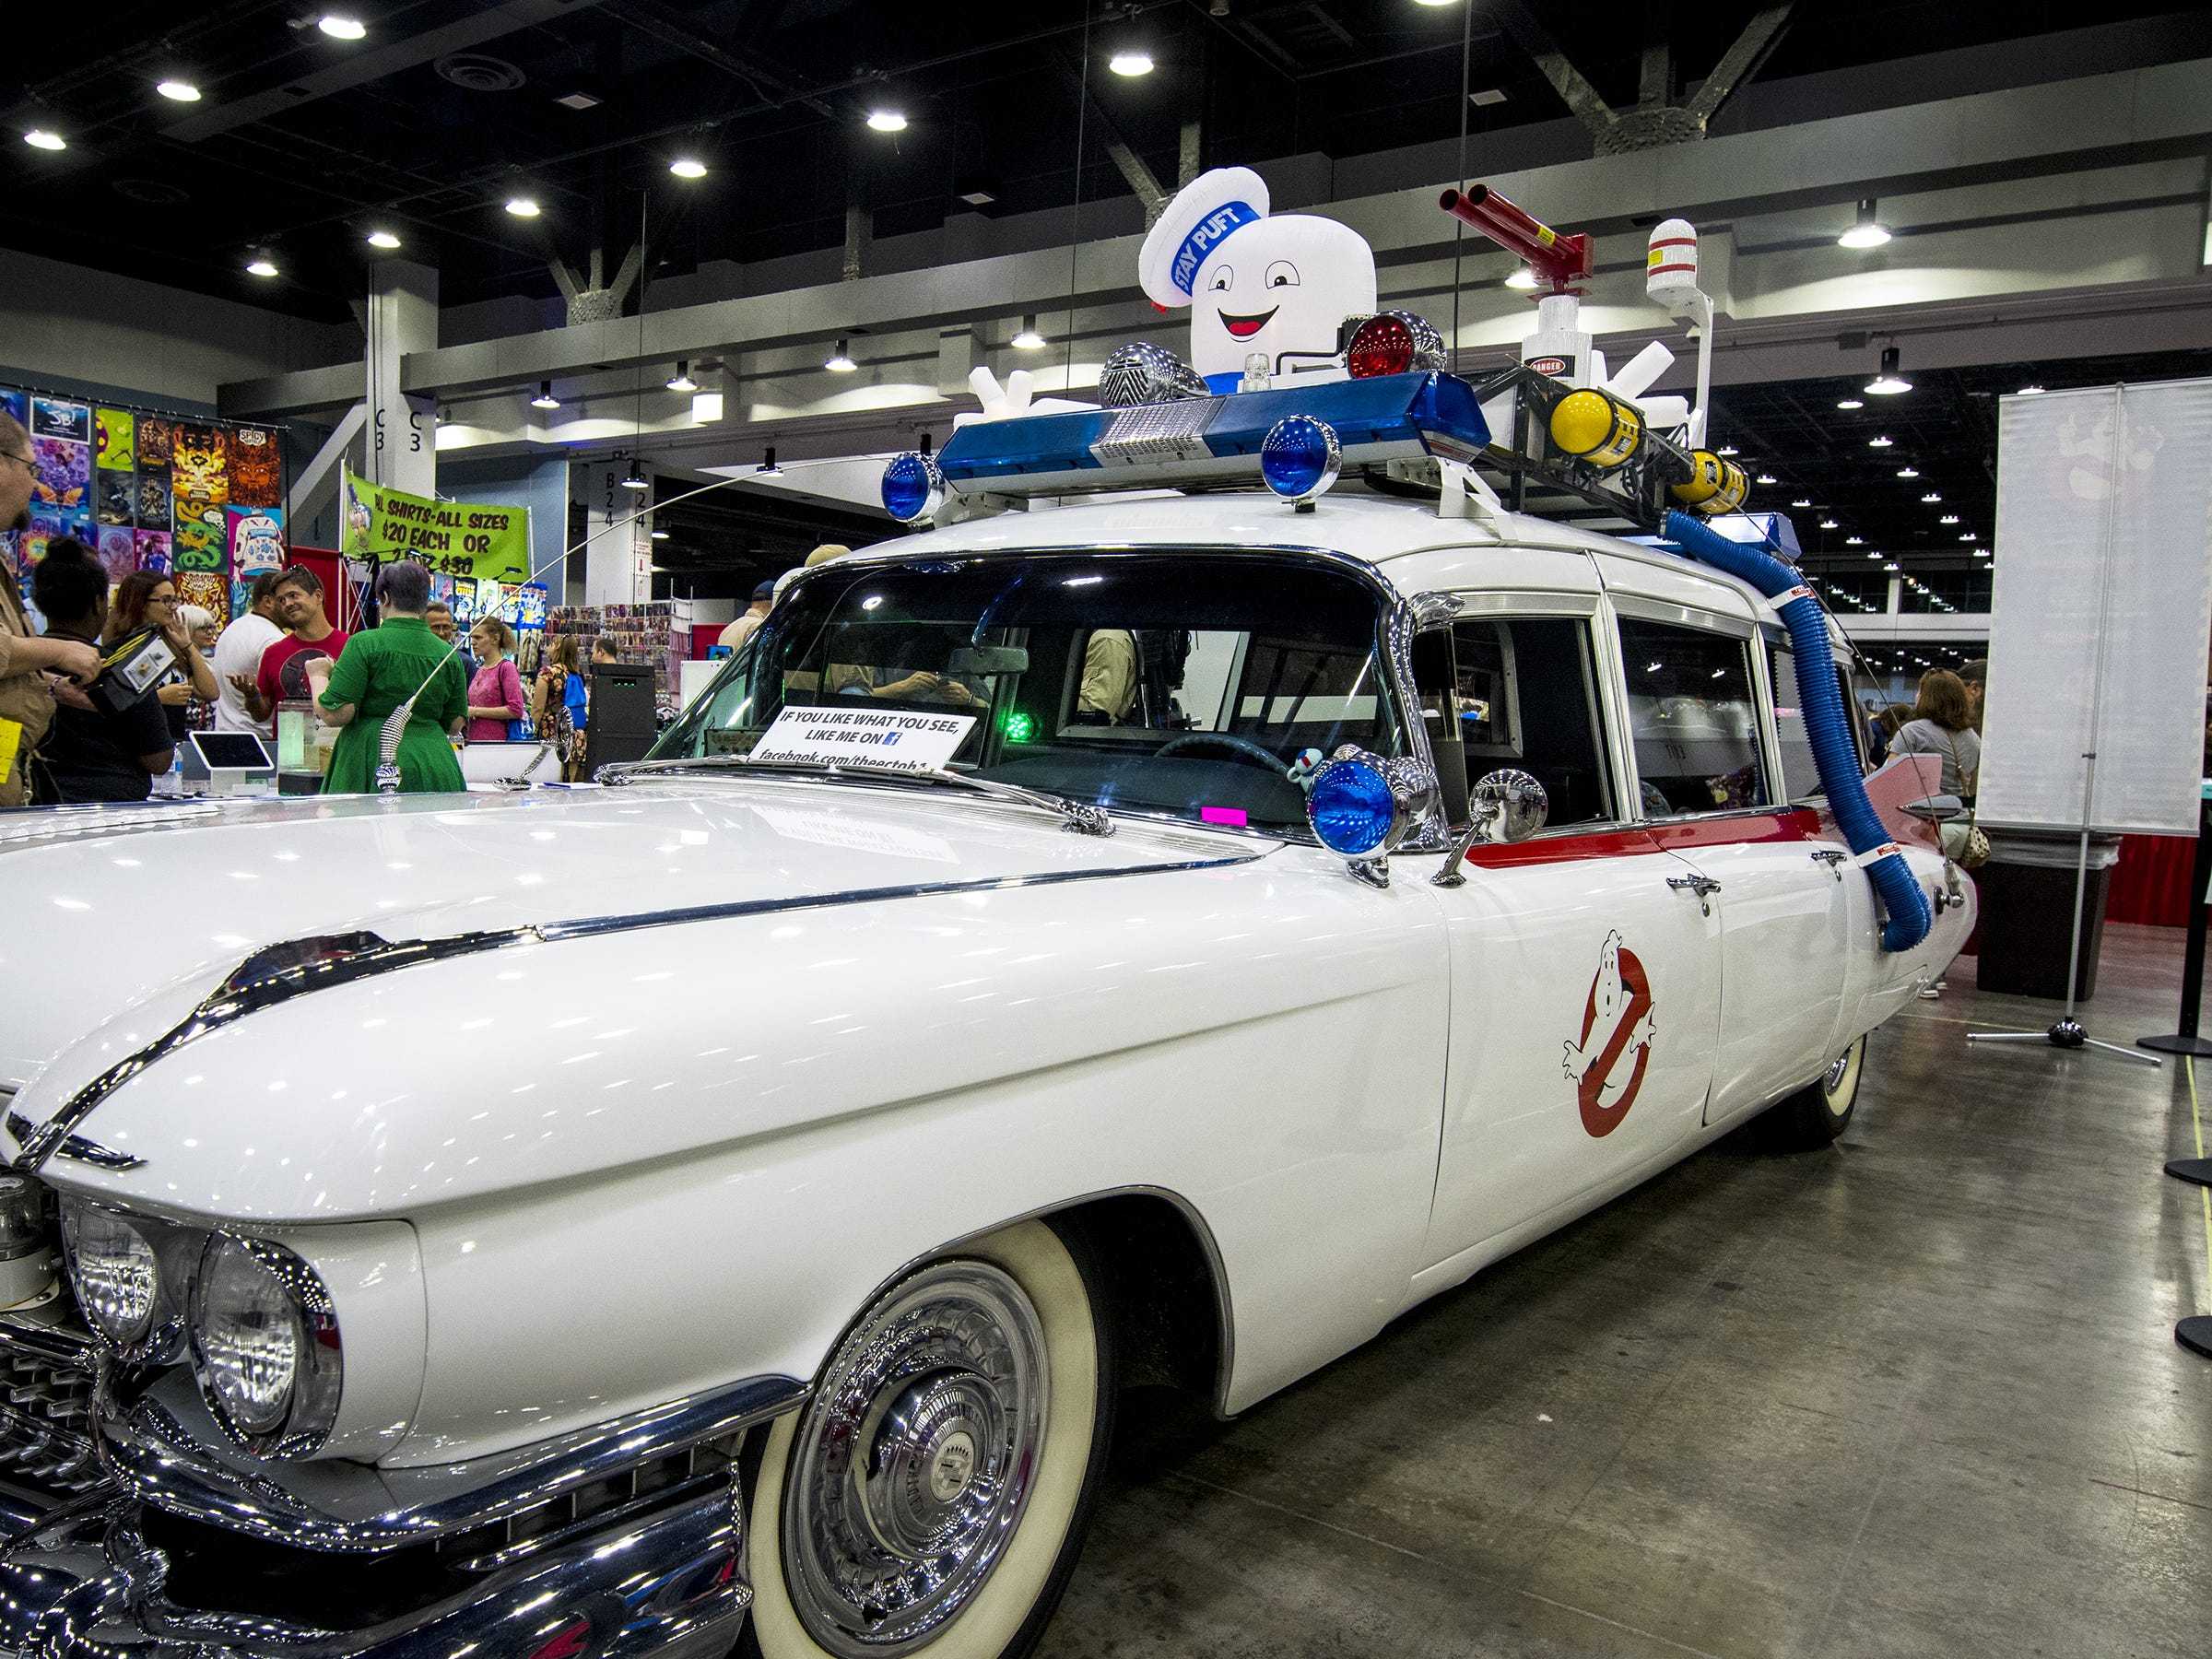 A Ghost Busters replica car is one of many props that guests can pose in front of during the Cincinnati Comic Expo at the Duke Energy Center.